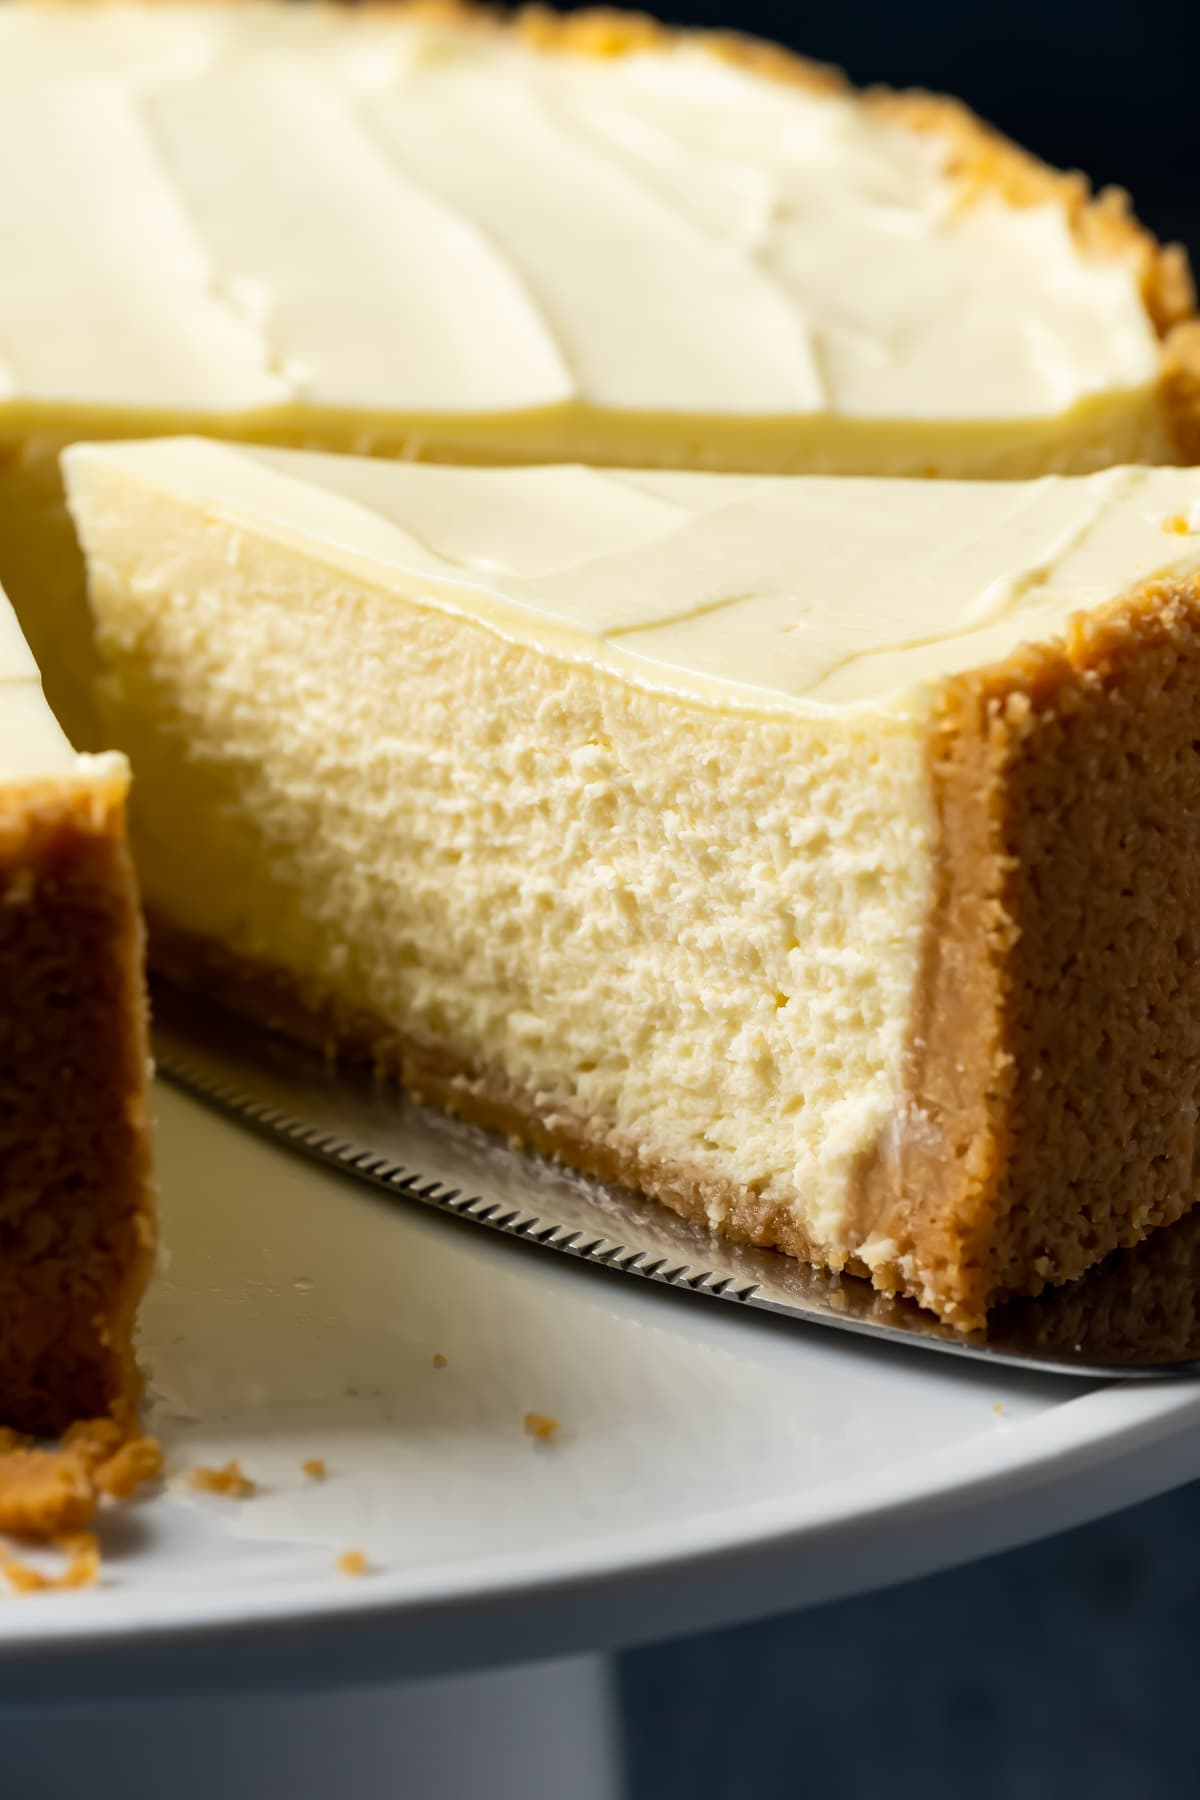 Eggless cheesecake on a white cake stand with one slice ready to serve.